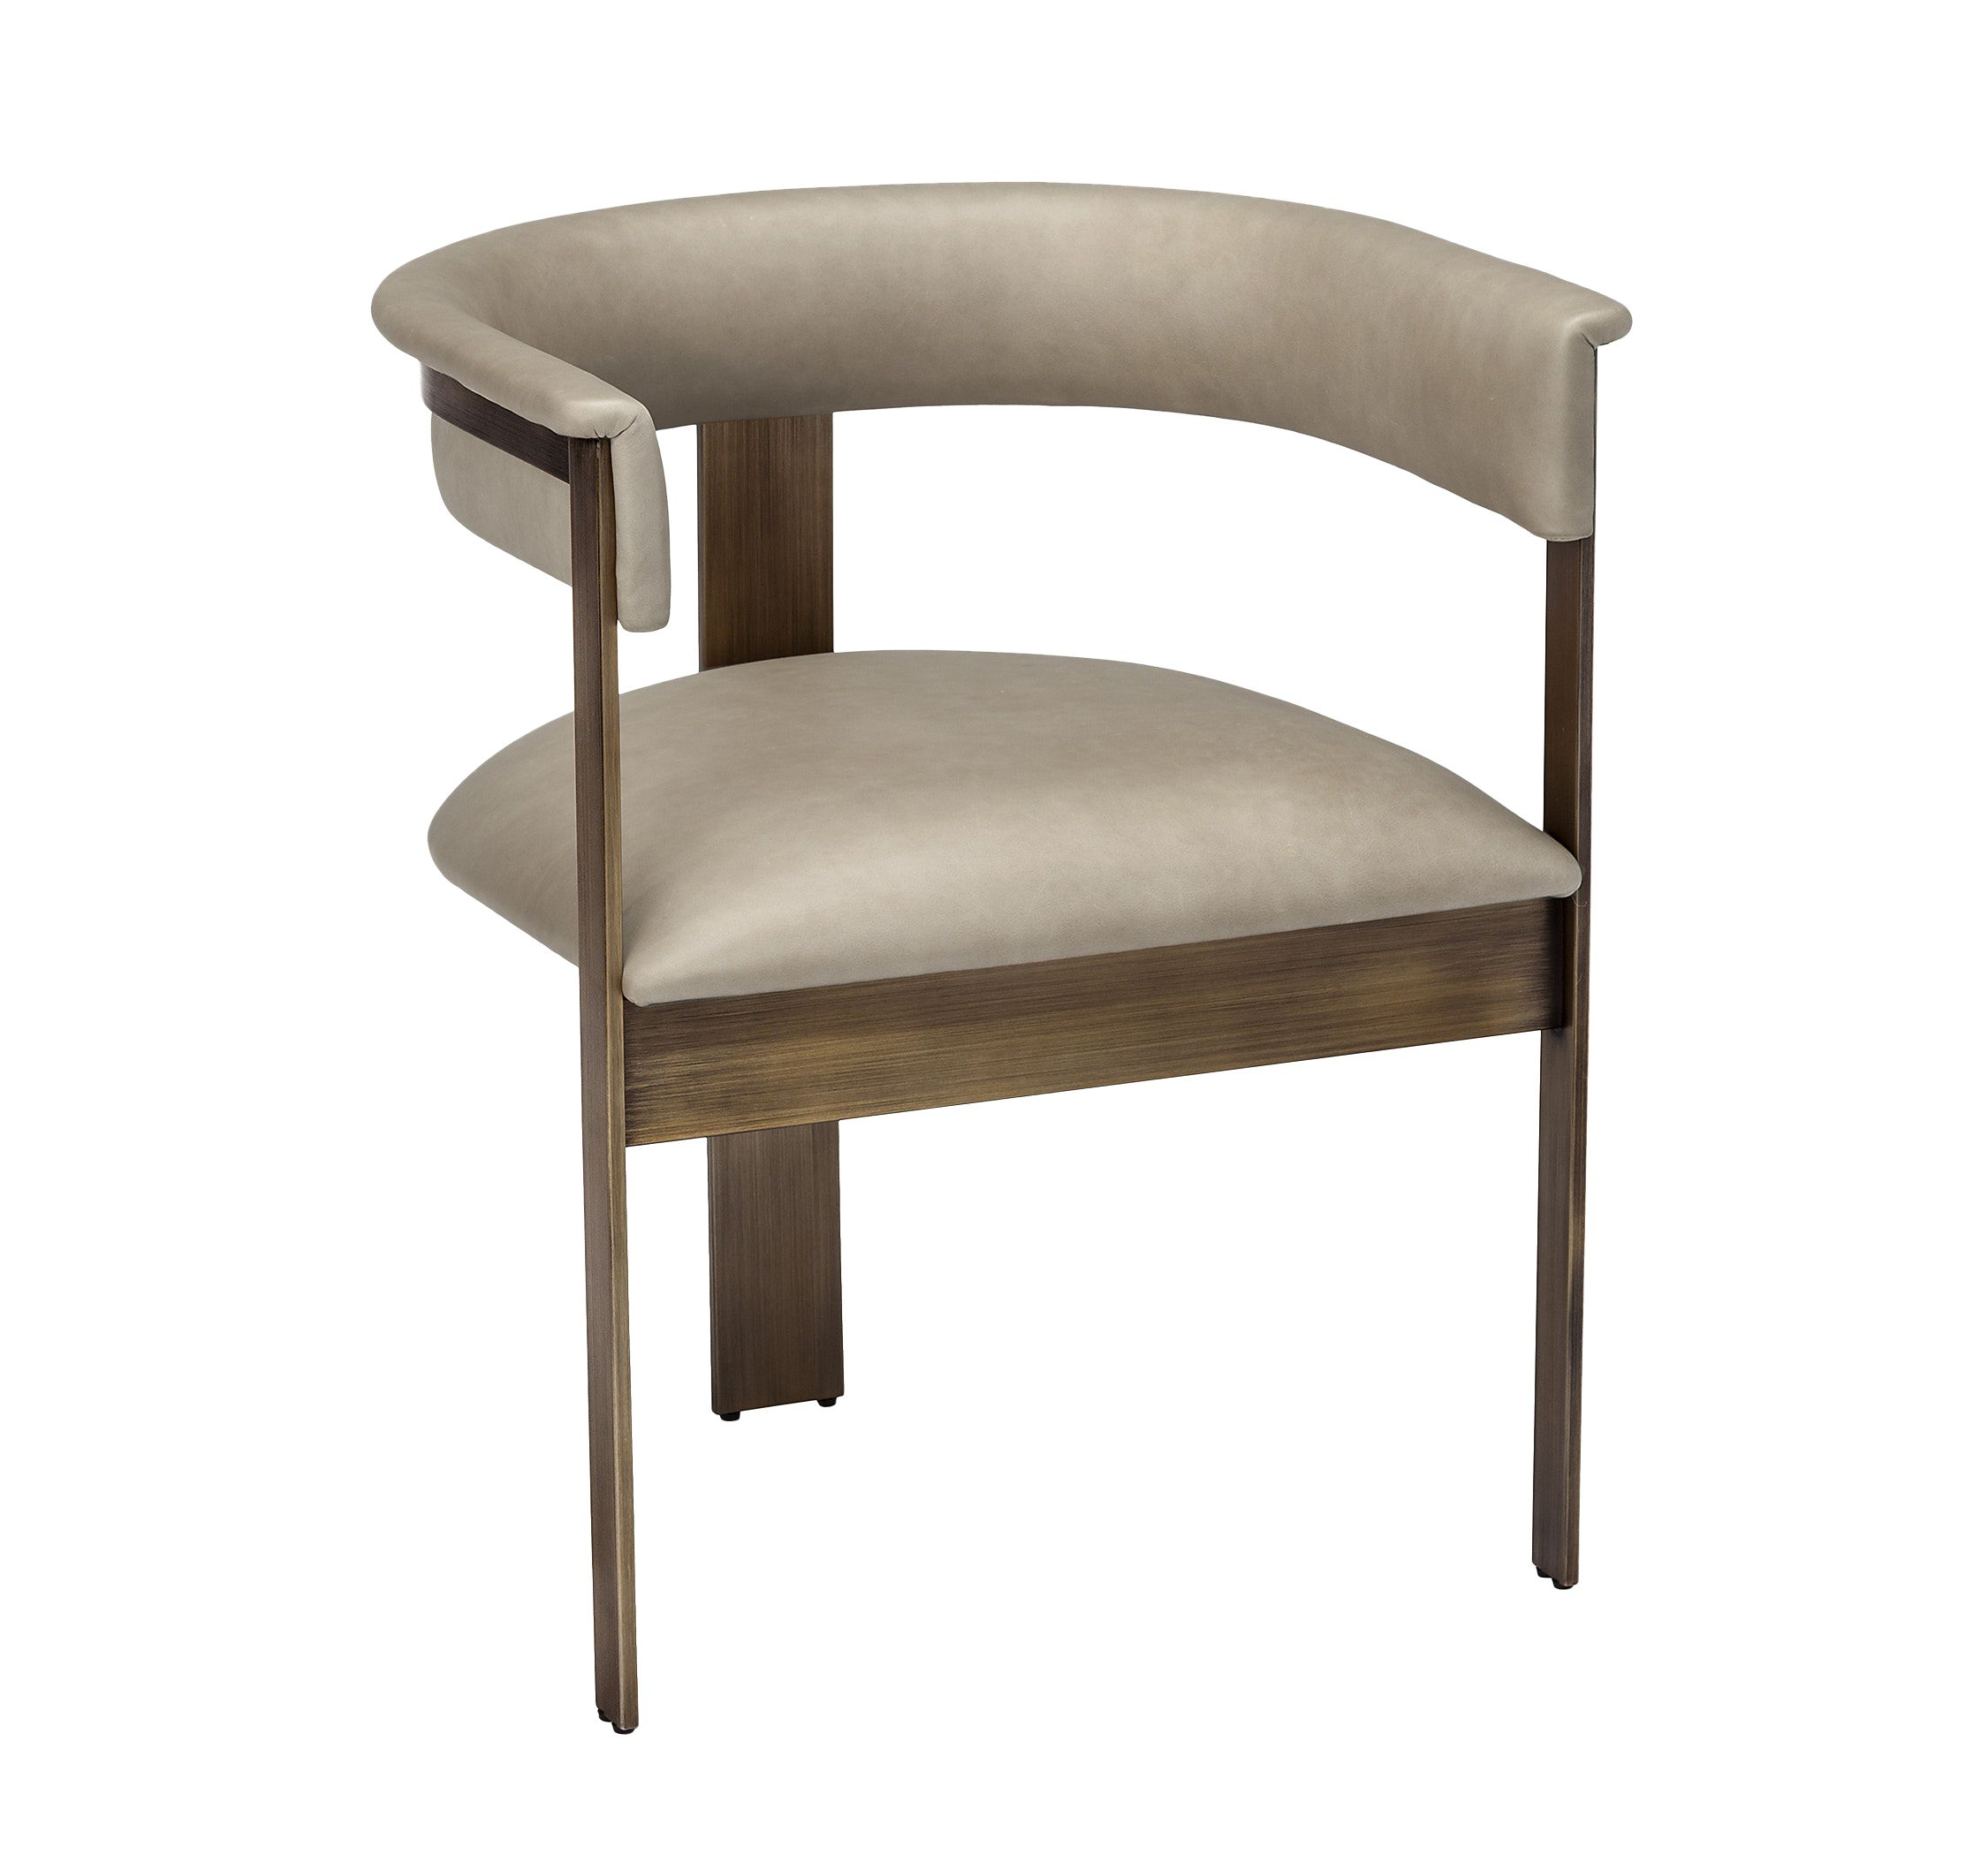 Darcy Dining Chair Taupe Upholstered Dining Chairs Dining